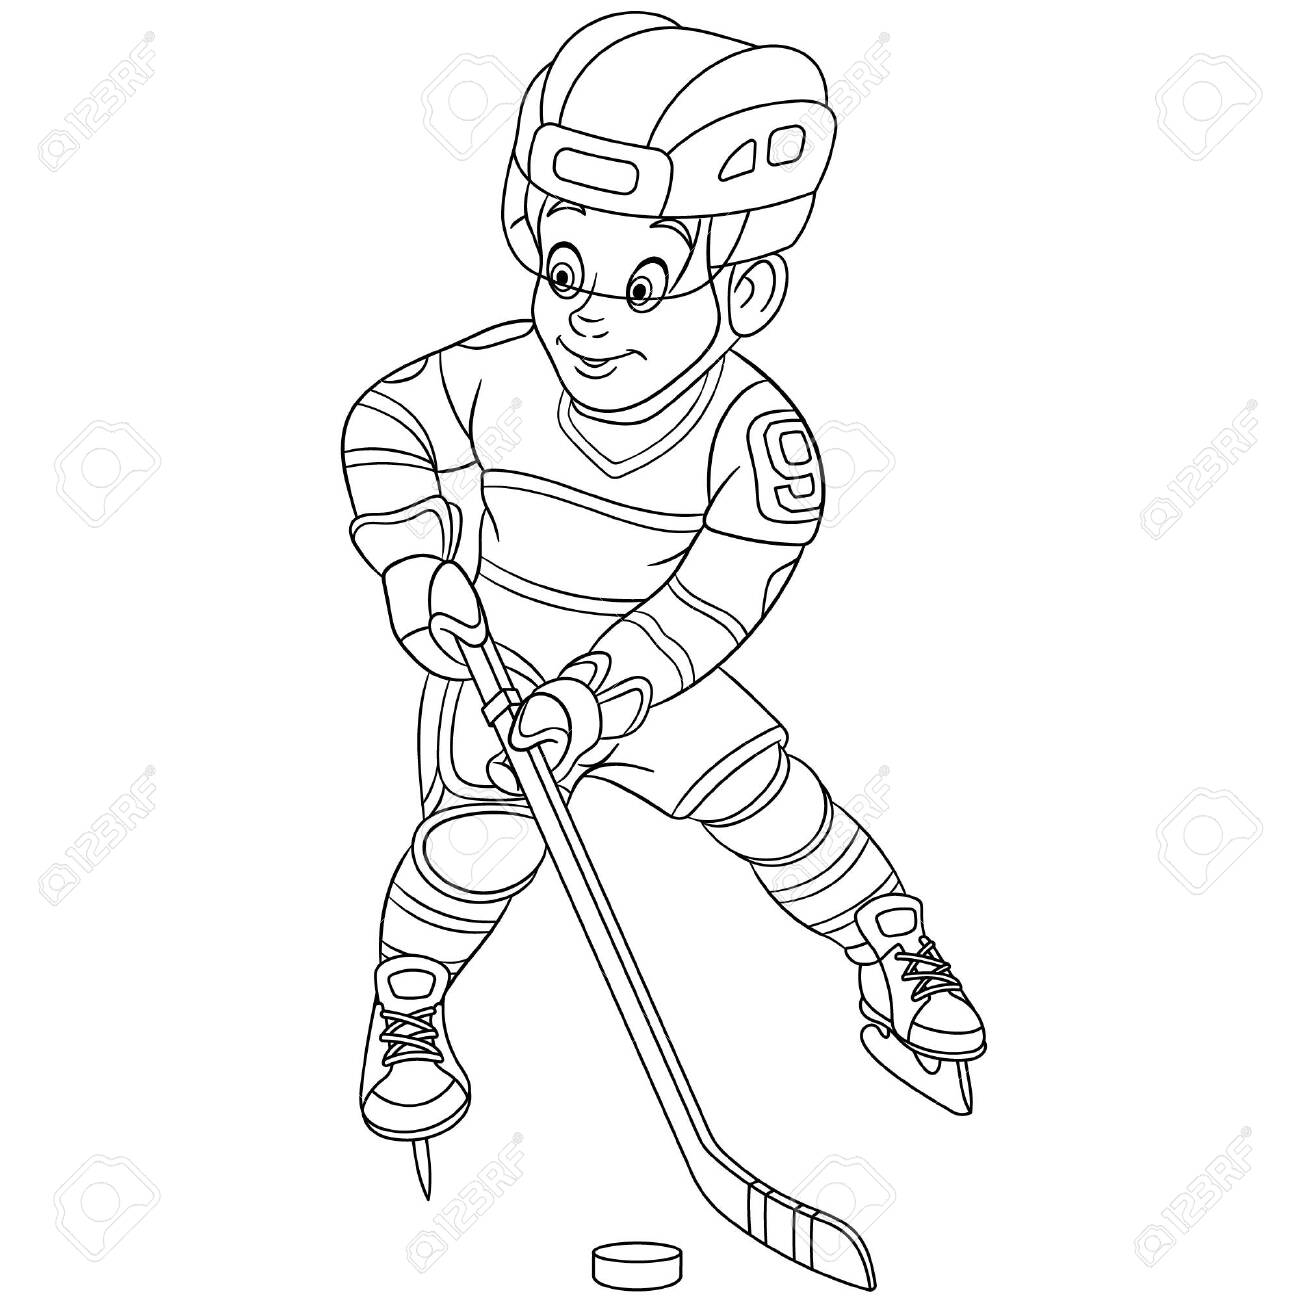 Coloring Page Coloring Picture Of Cartoon Hockey Player Boy Royalty Free Cliparts Vectors And Stock Illustration Image 135088768